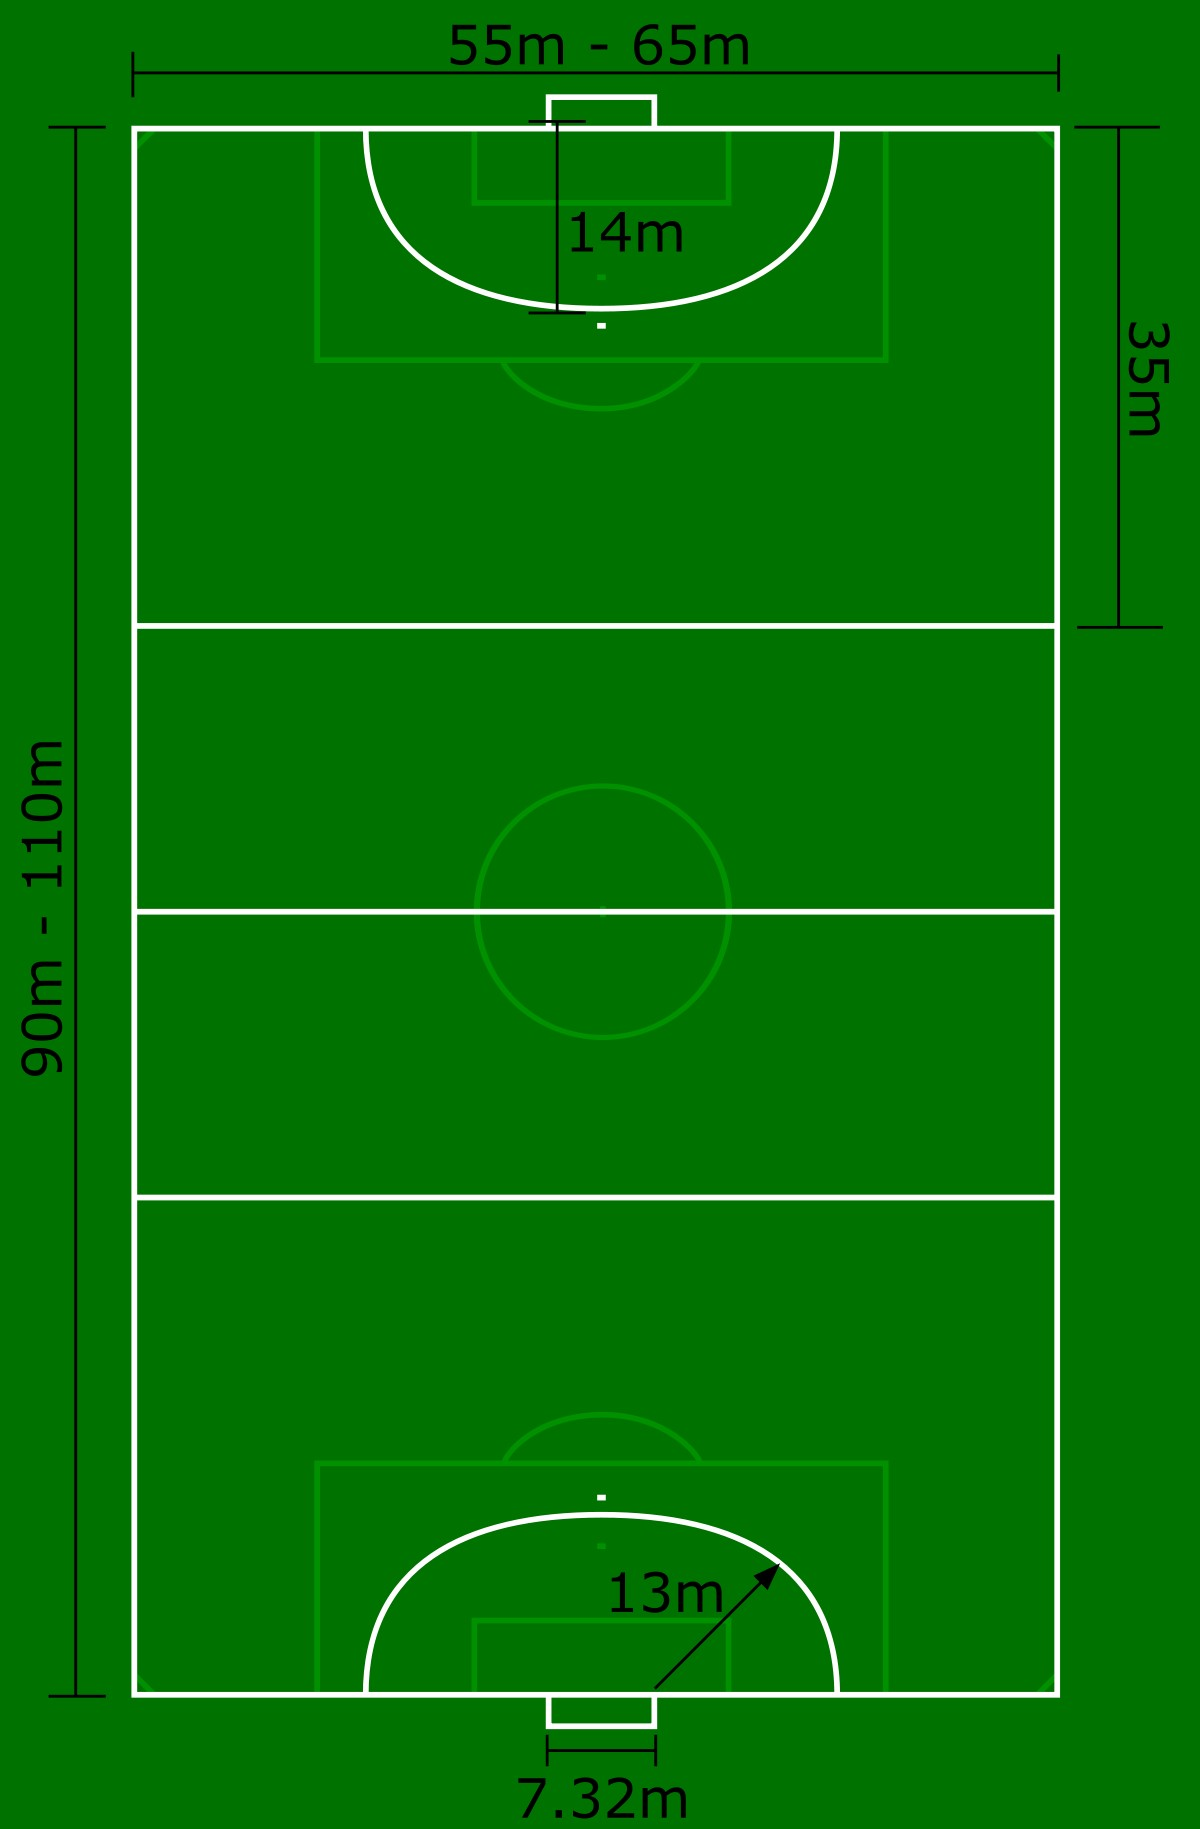 Handball Field Dimension Diagram